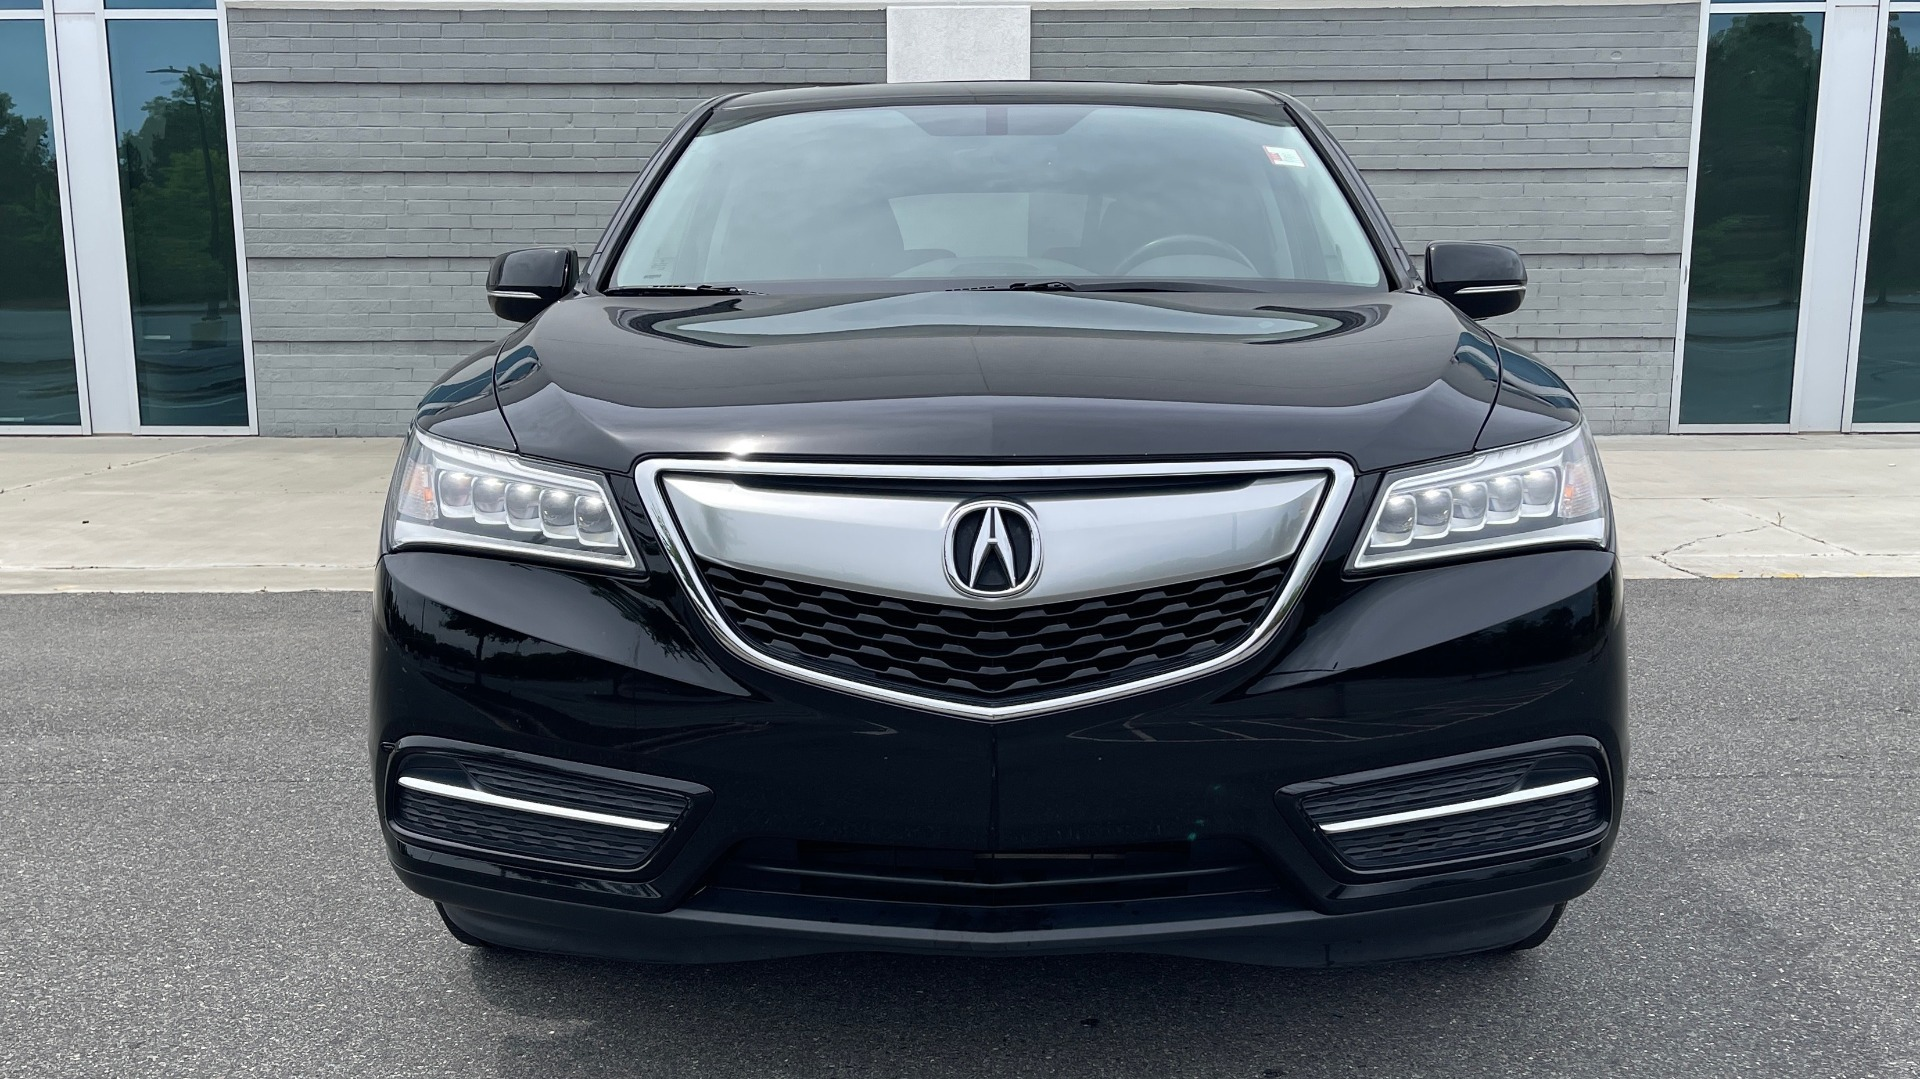 Used 2016 Acura MDX 3.5L V6 / AUTO / LEATHER / NAV / SUNROOF / 3-ROW / REARVIEW for sale $21,900 at Formula Imports in Charlotte NC 28227 13